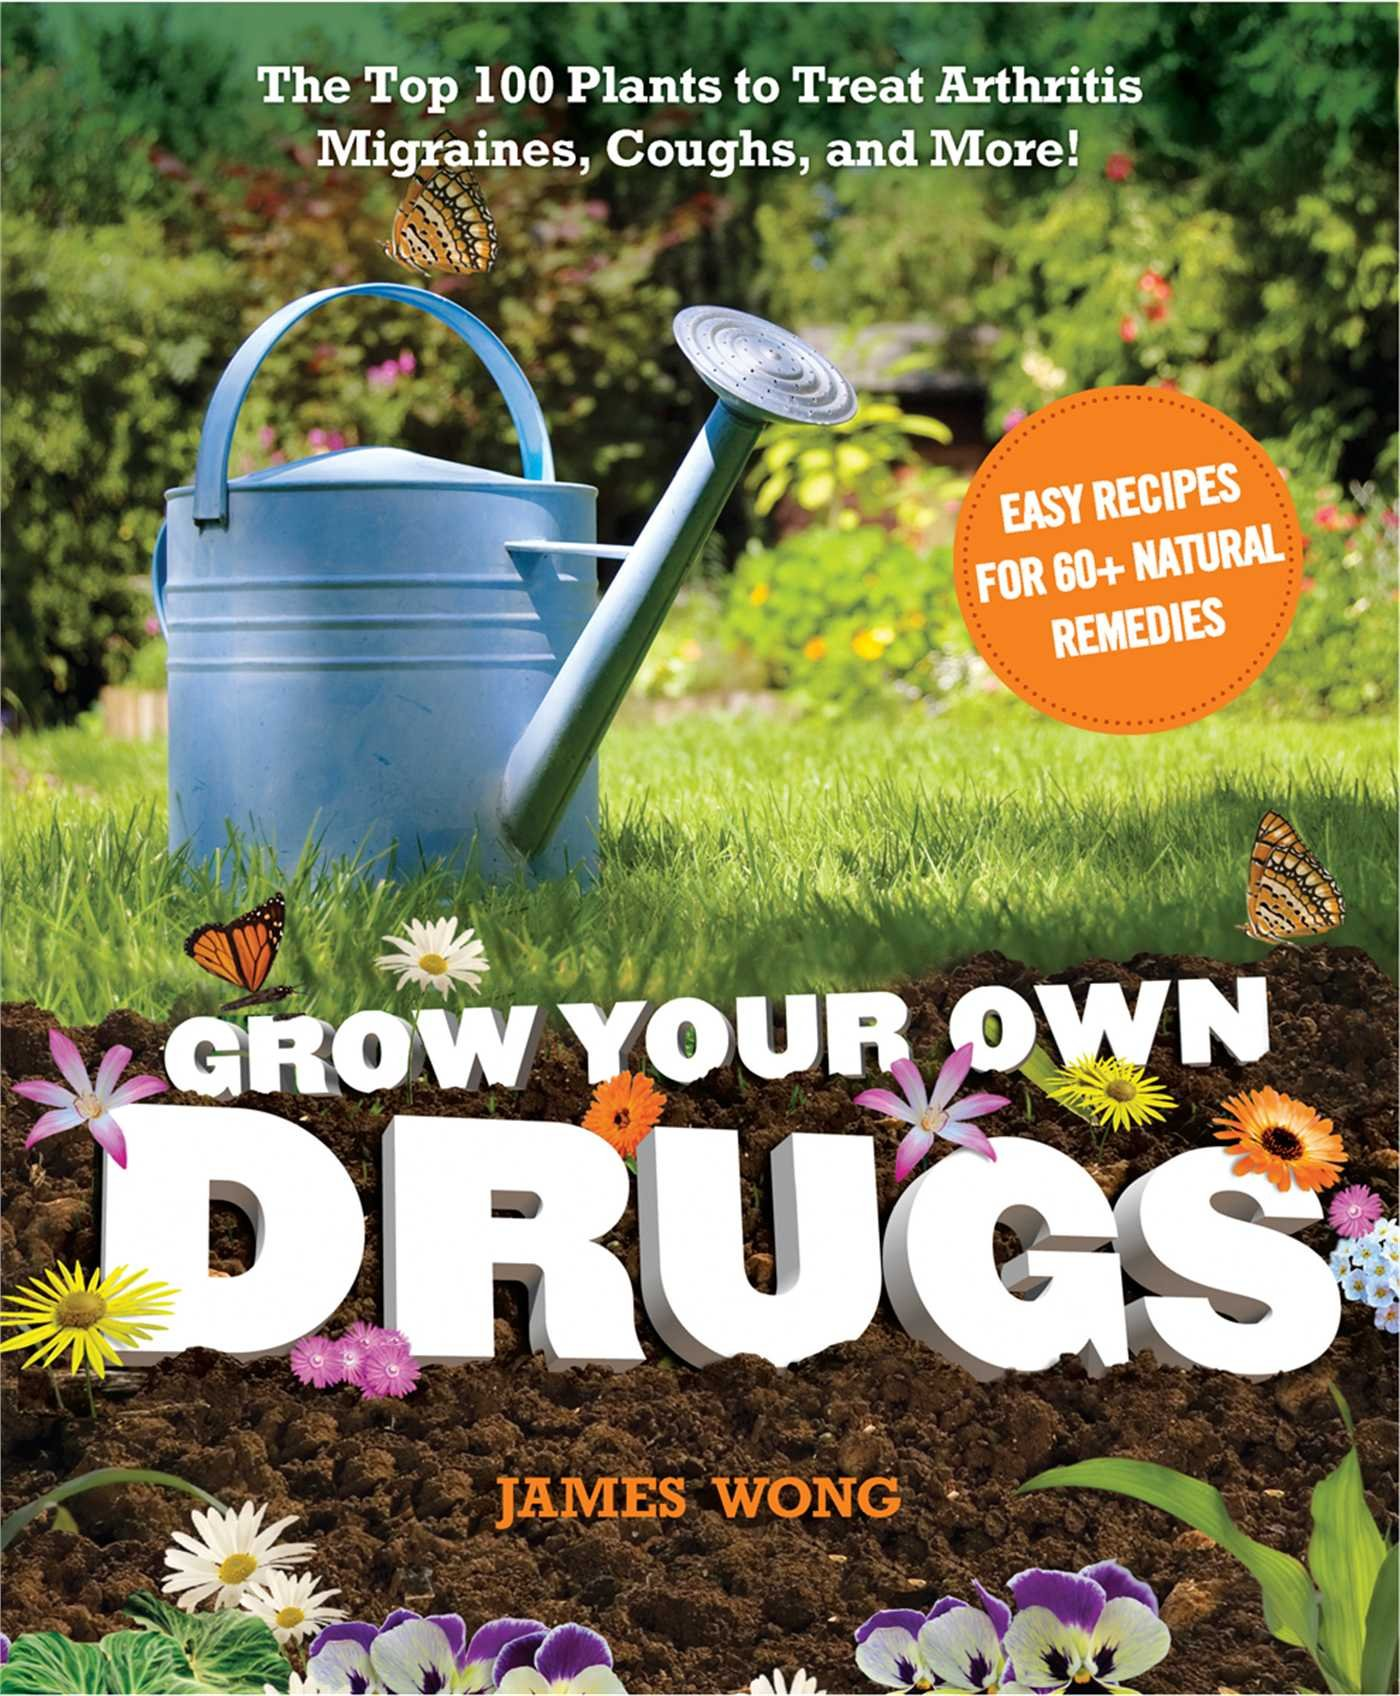 Gardeners What do you think about drugs like Alerin EcoBerry Healthy garden